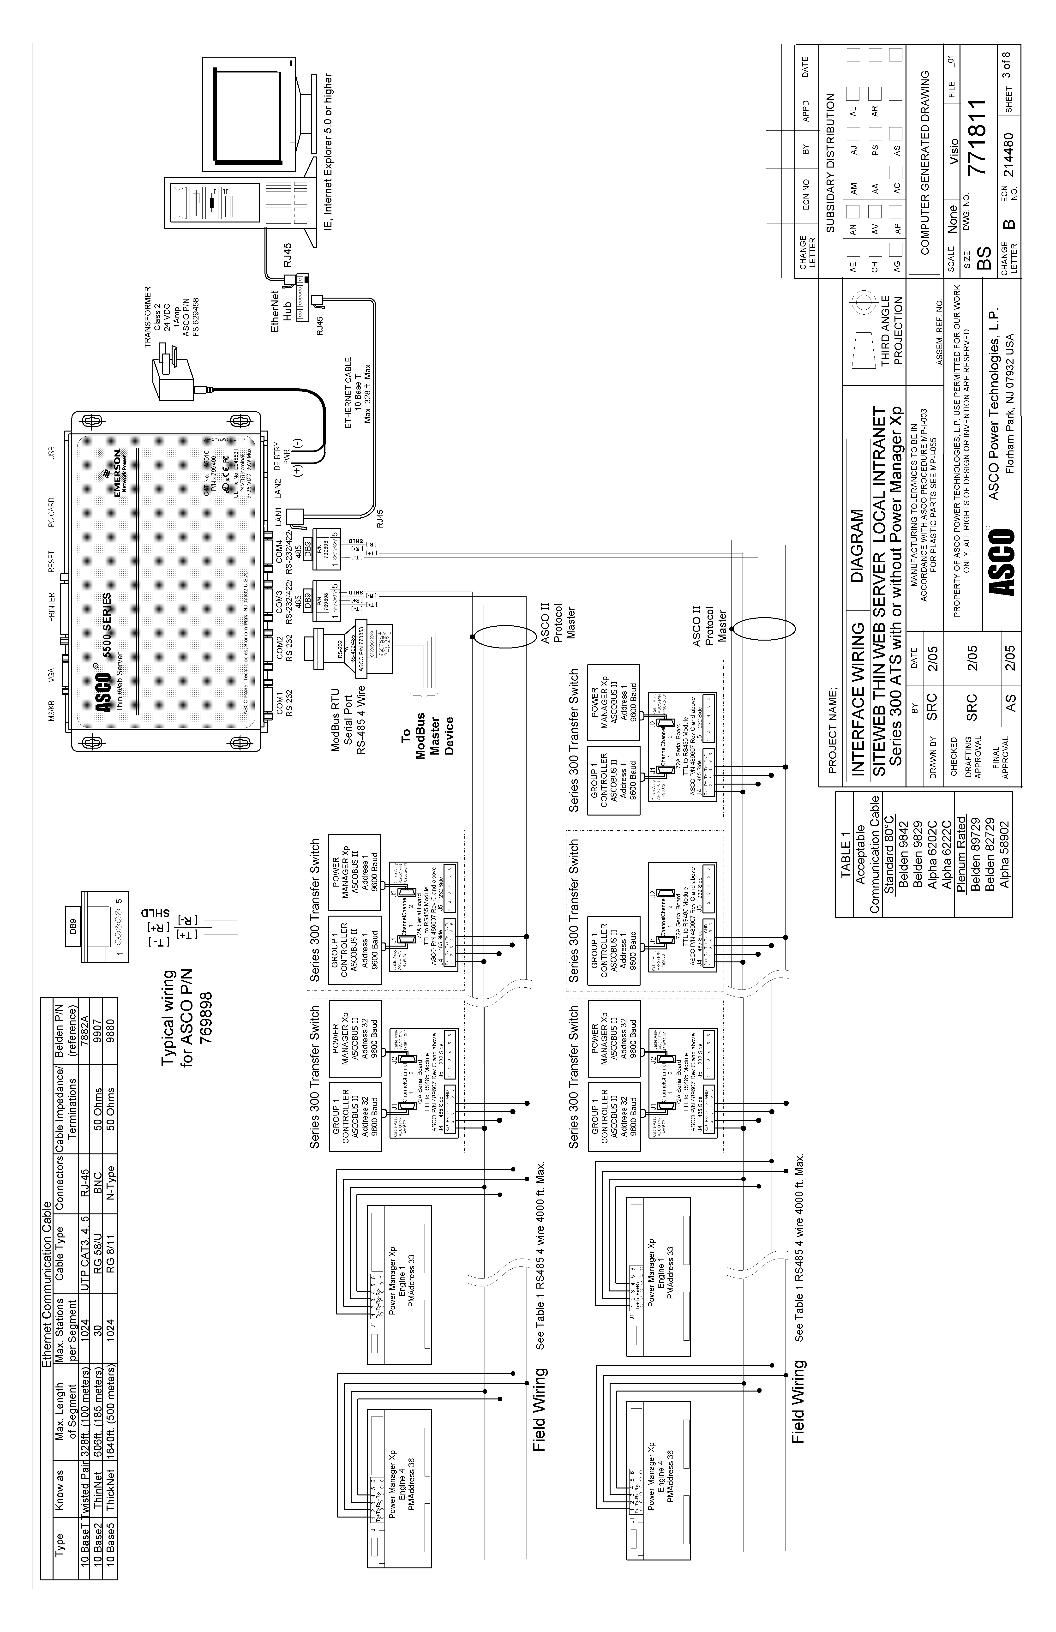 generator automatic transfer switch wiring diagram pdf